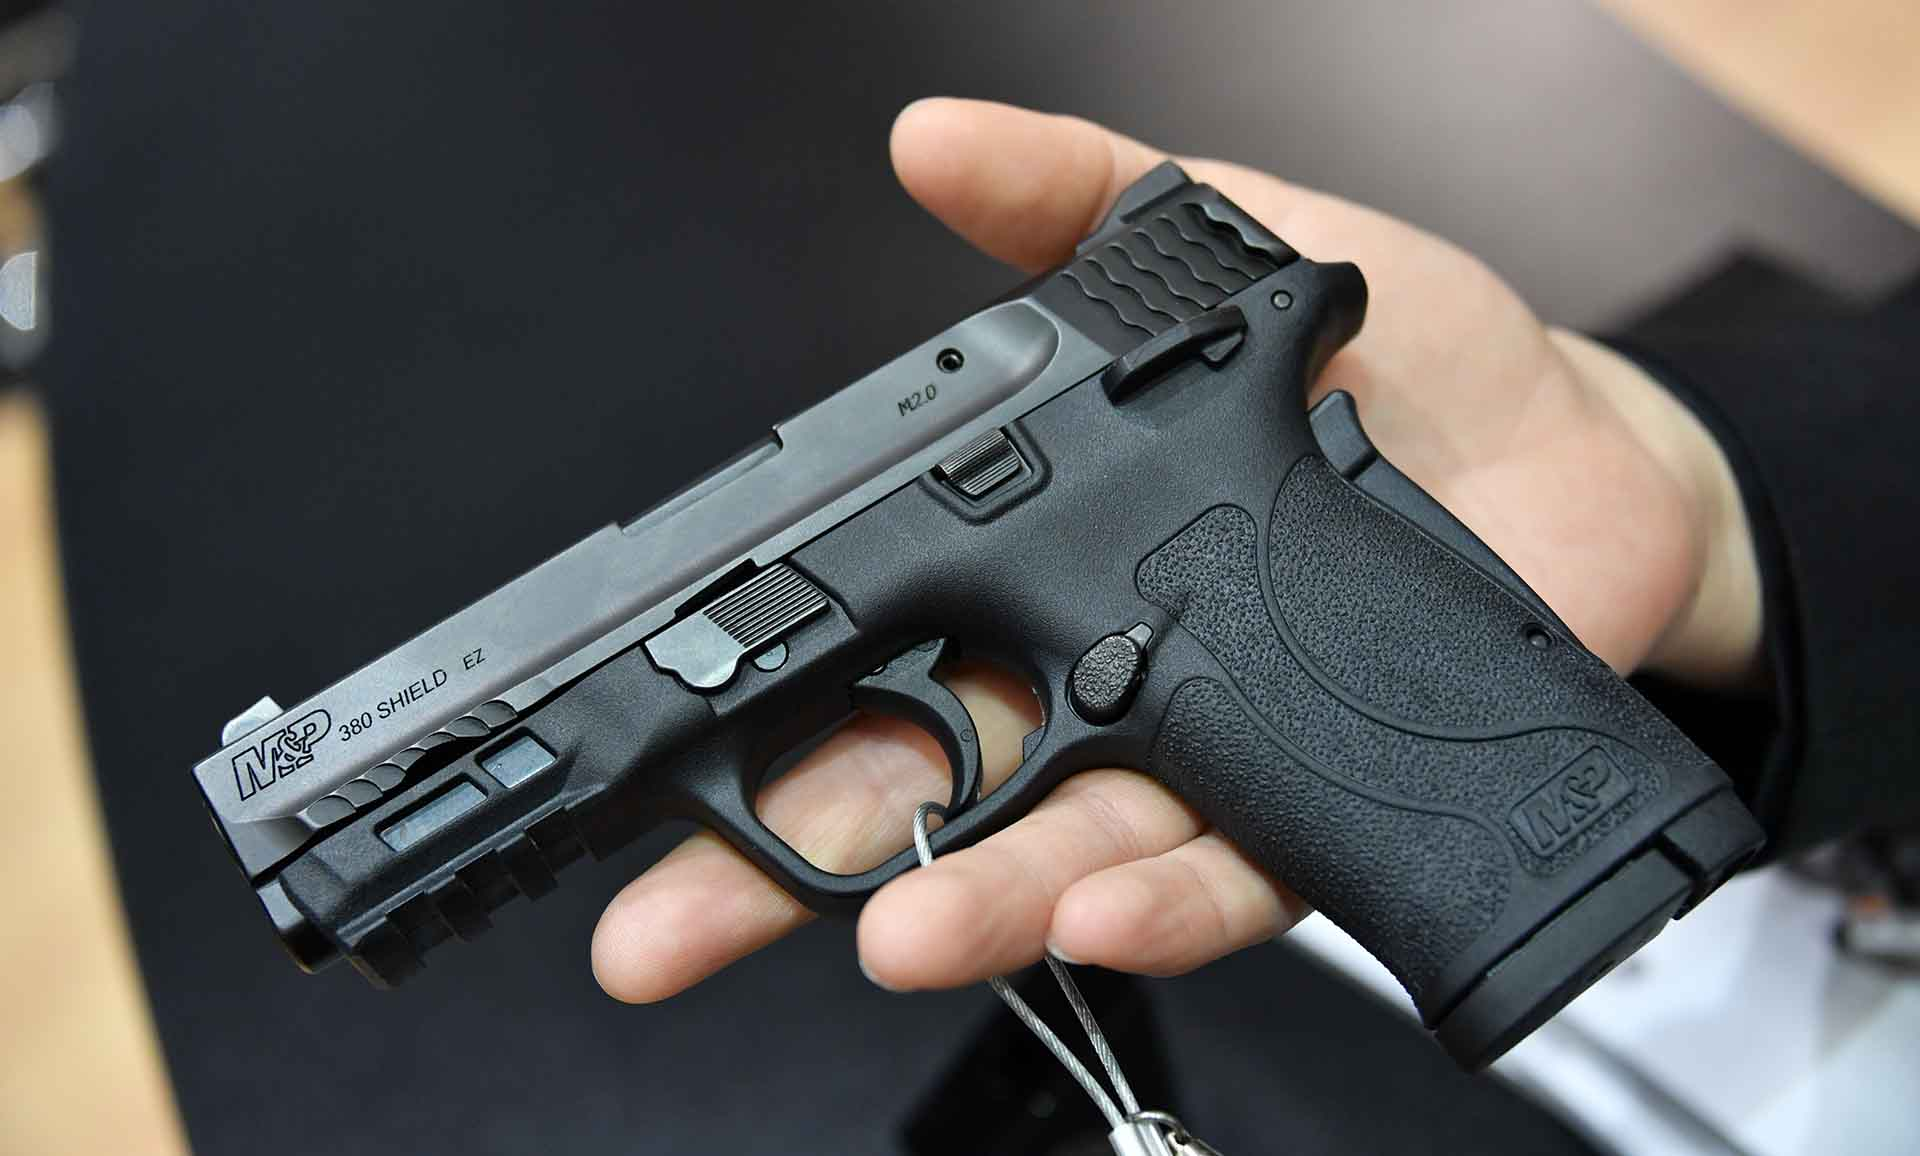 Smith & Wesson M&P Shield EZ, or Easy pistol.